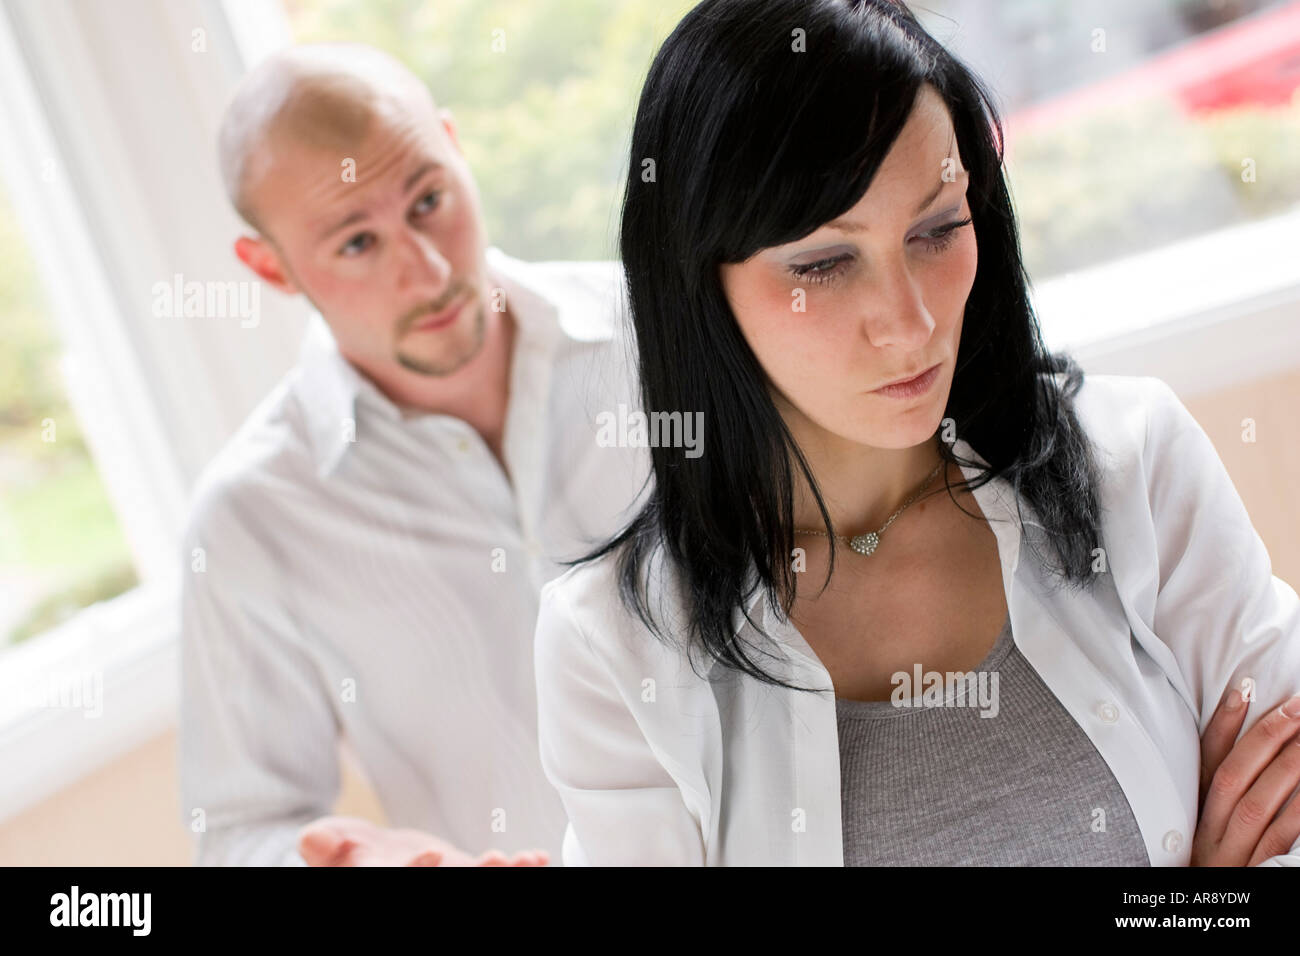 Couple in dispute - Stock Image